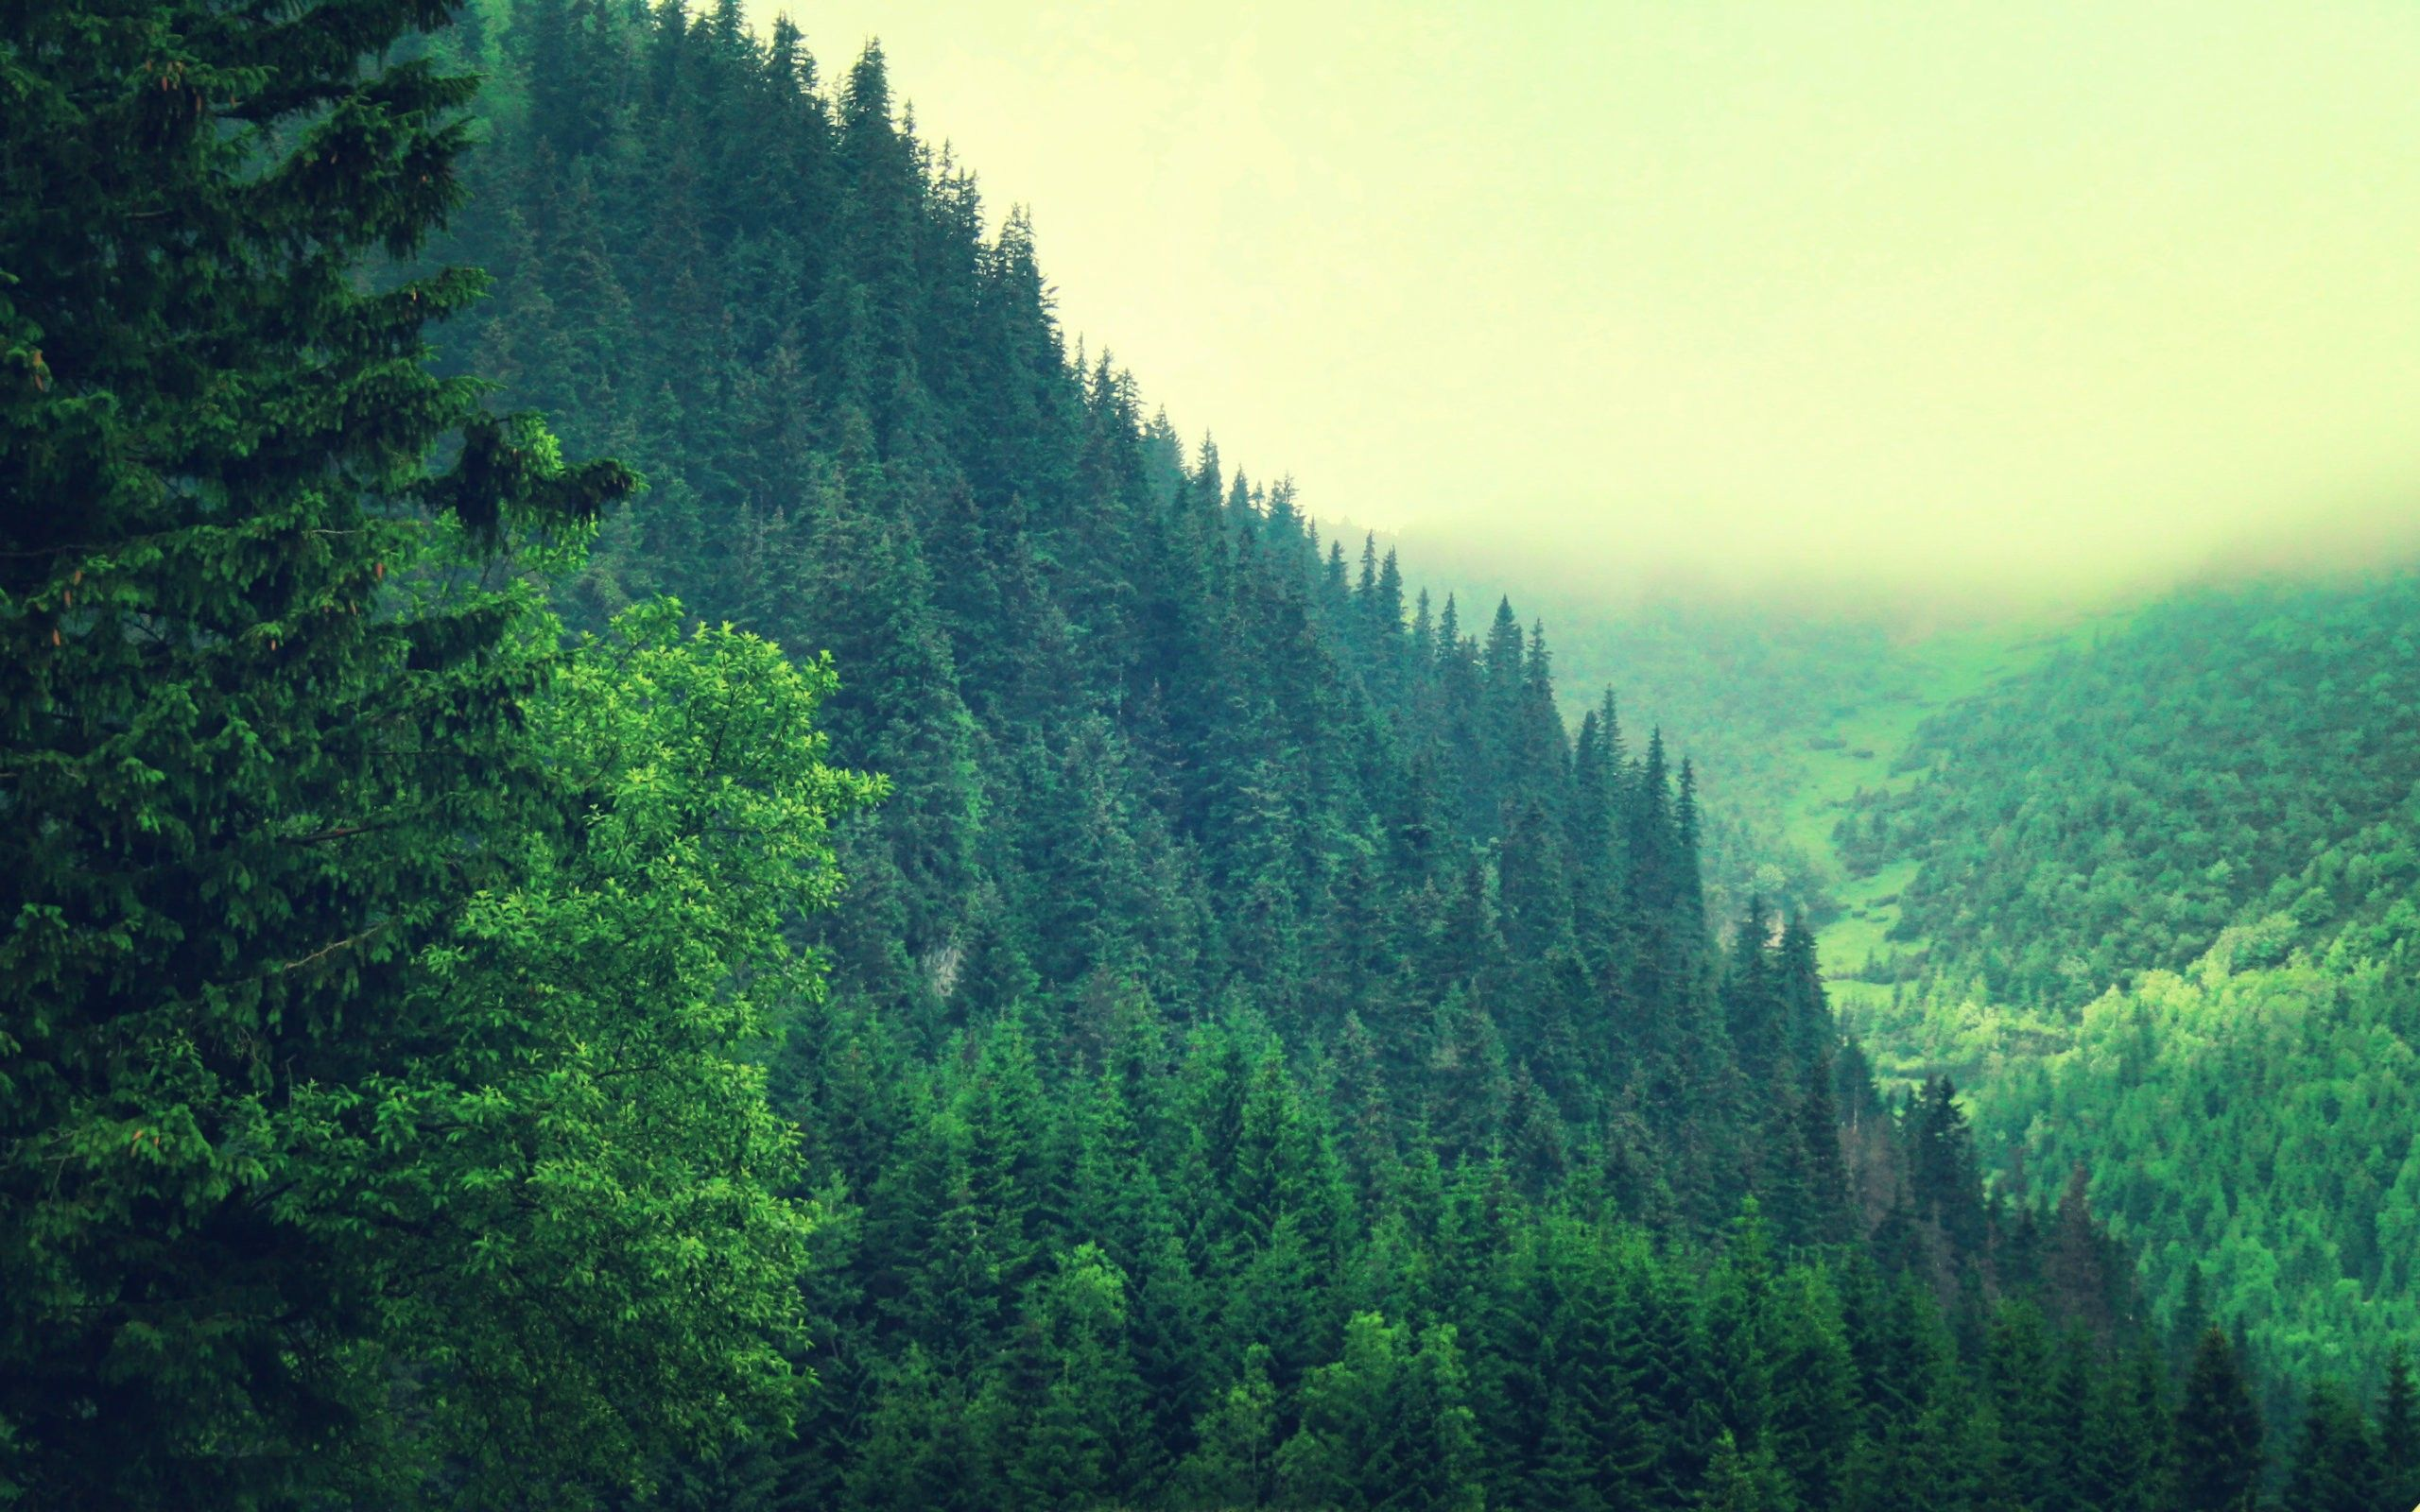 Pine Forest Background Images Attachment 4873 - HD Wallpapers Site | Backgrounds | Forest ...